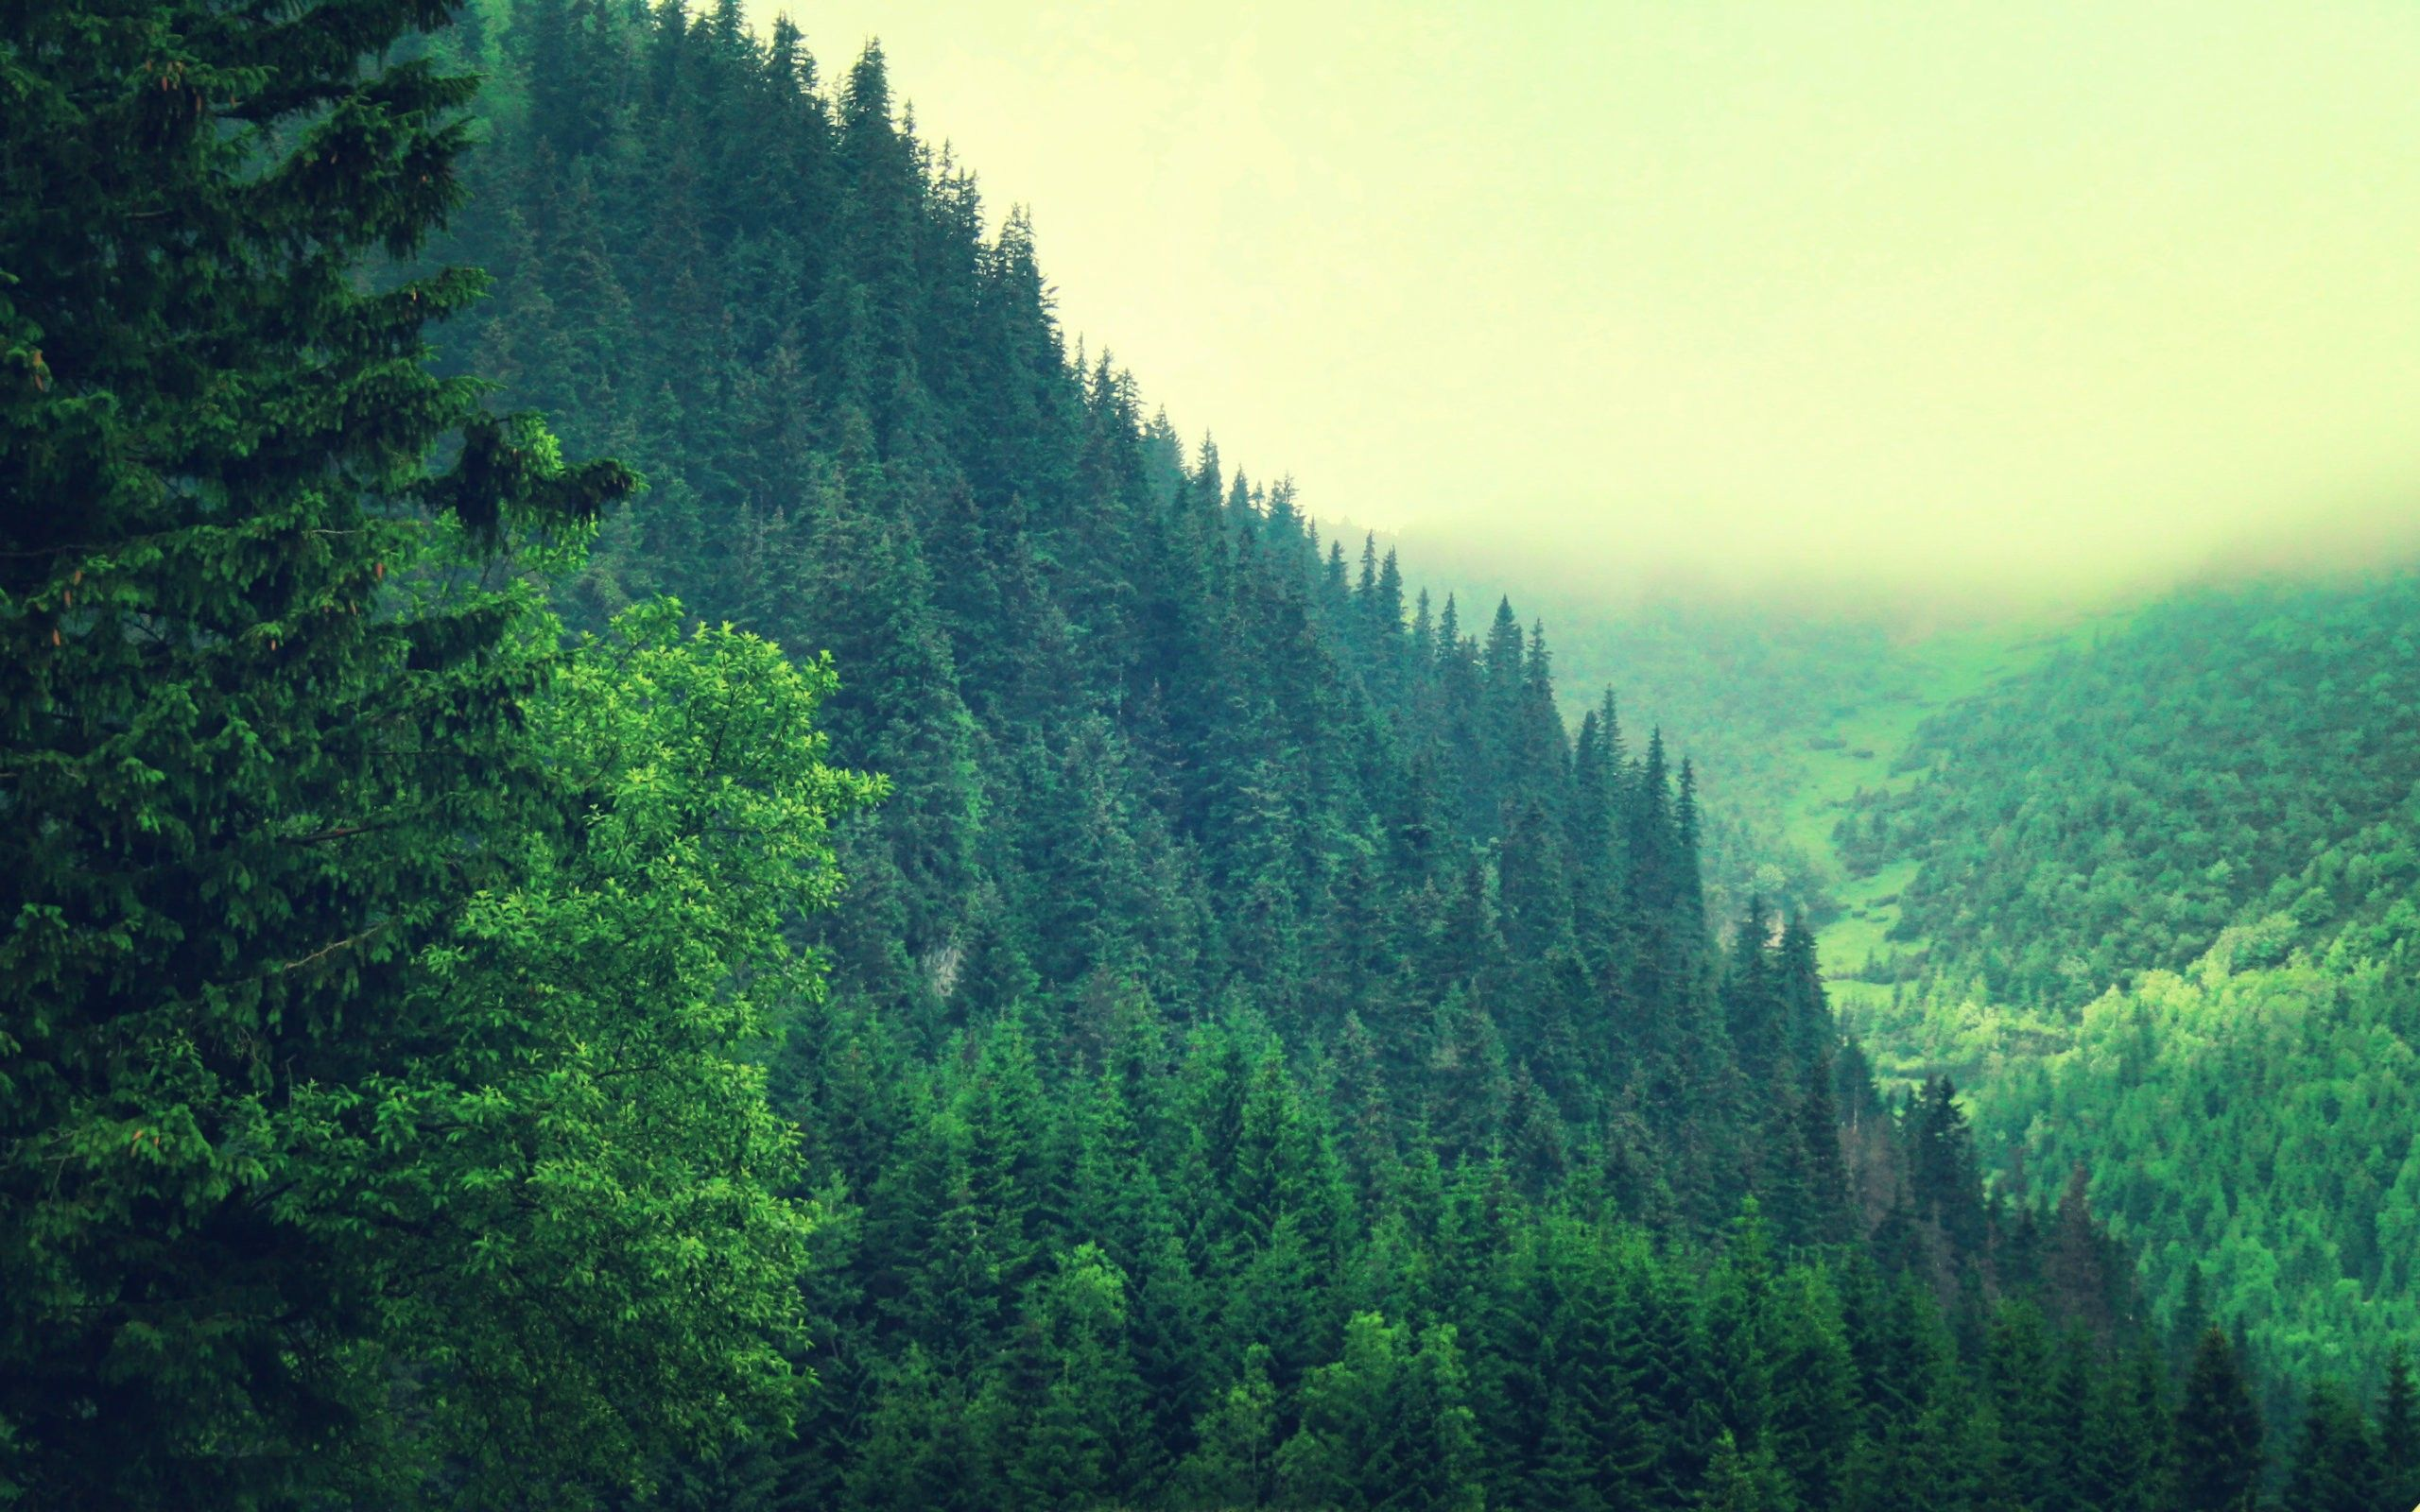 Pine Forest Background Images Attachment 4873 - HD Wallpapers Site | Backgrounds | Forest ...